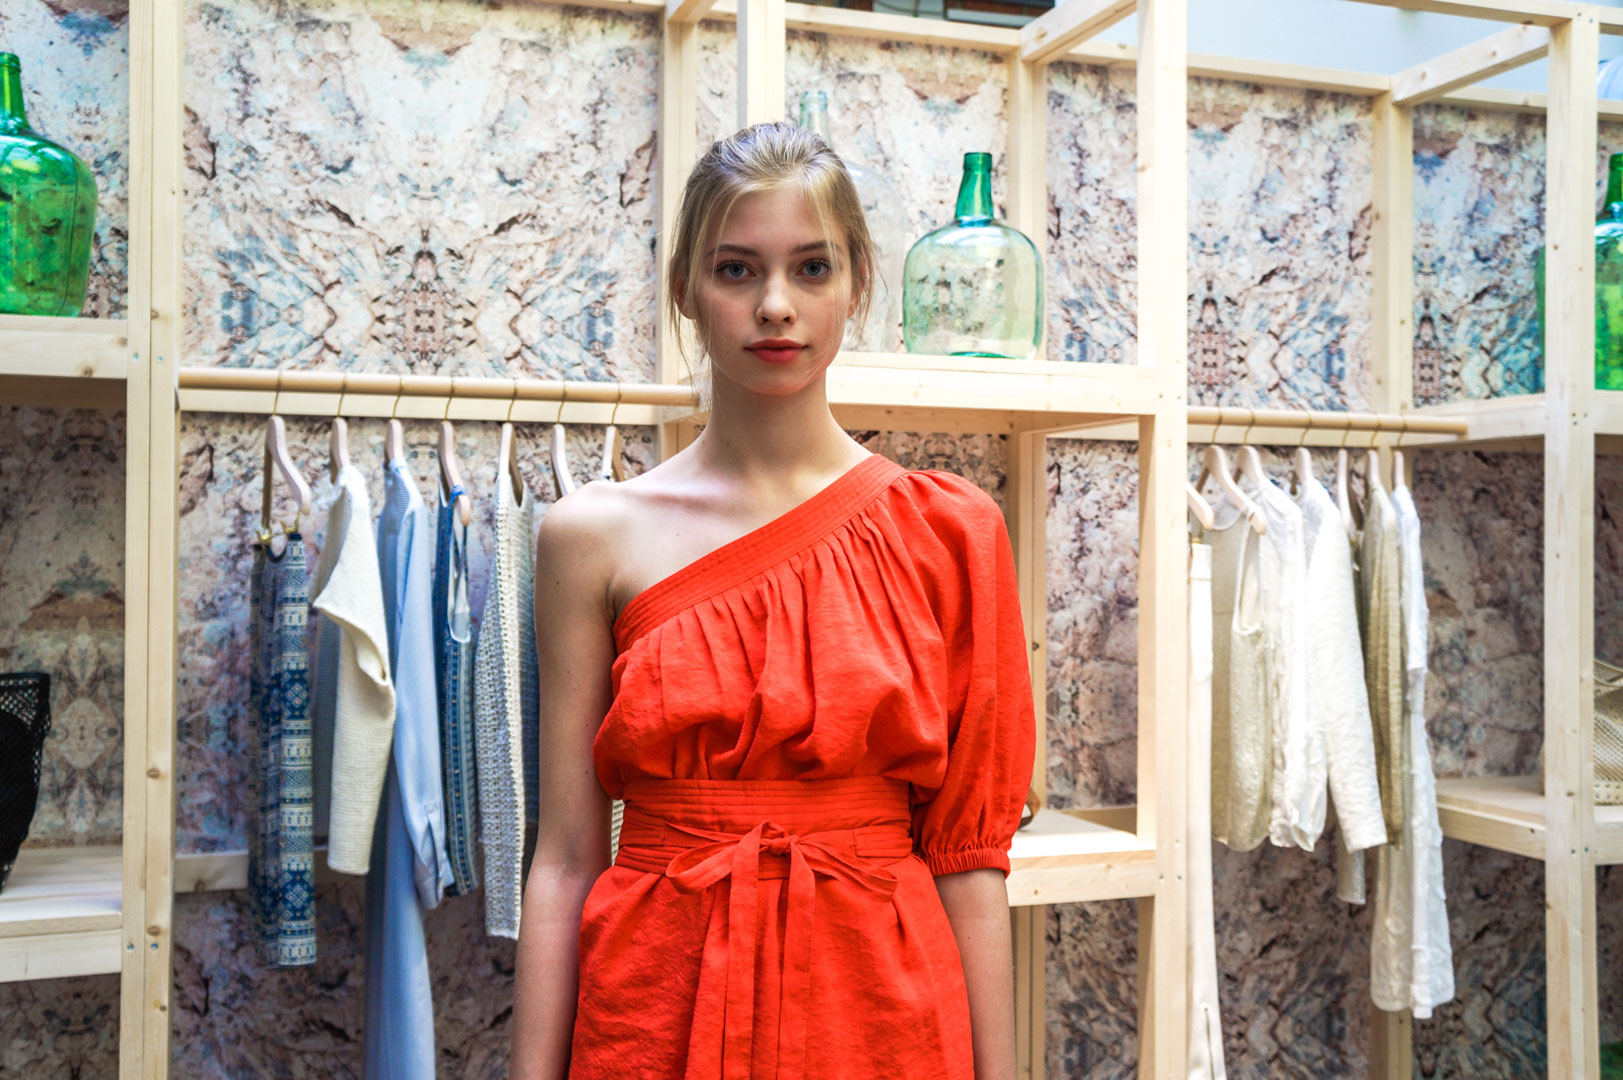 my-paris-fashion-week-diary-paris-by-polina-paraskevopoulou-all-rights-reserved-9